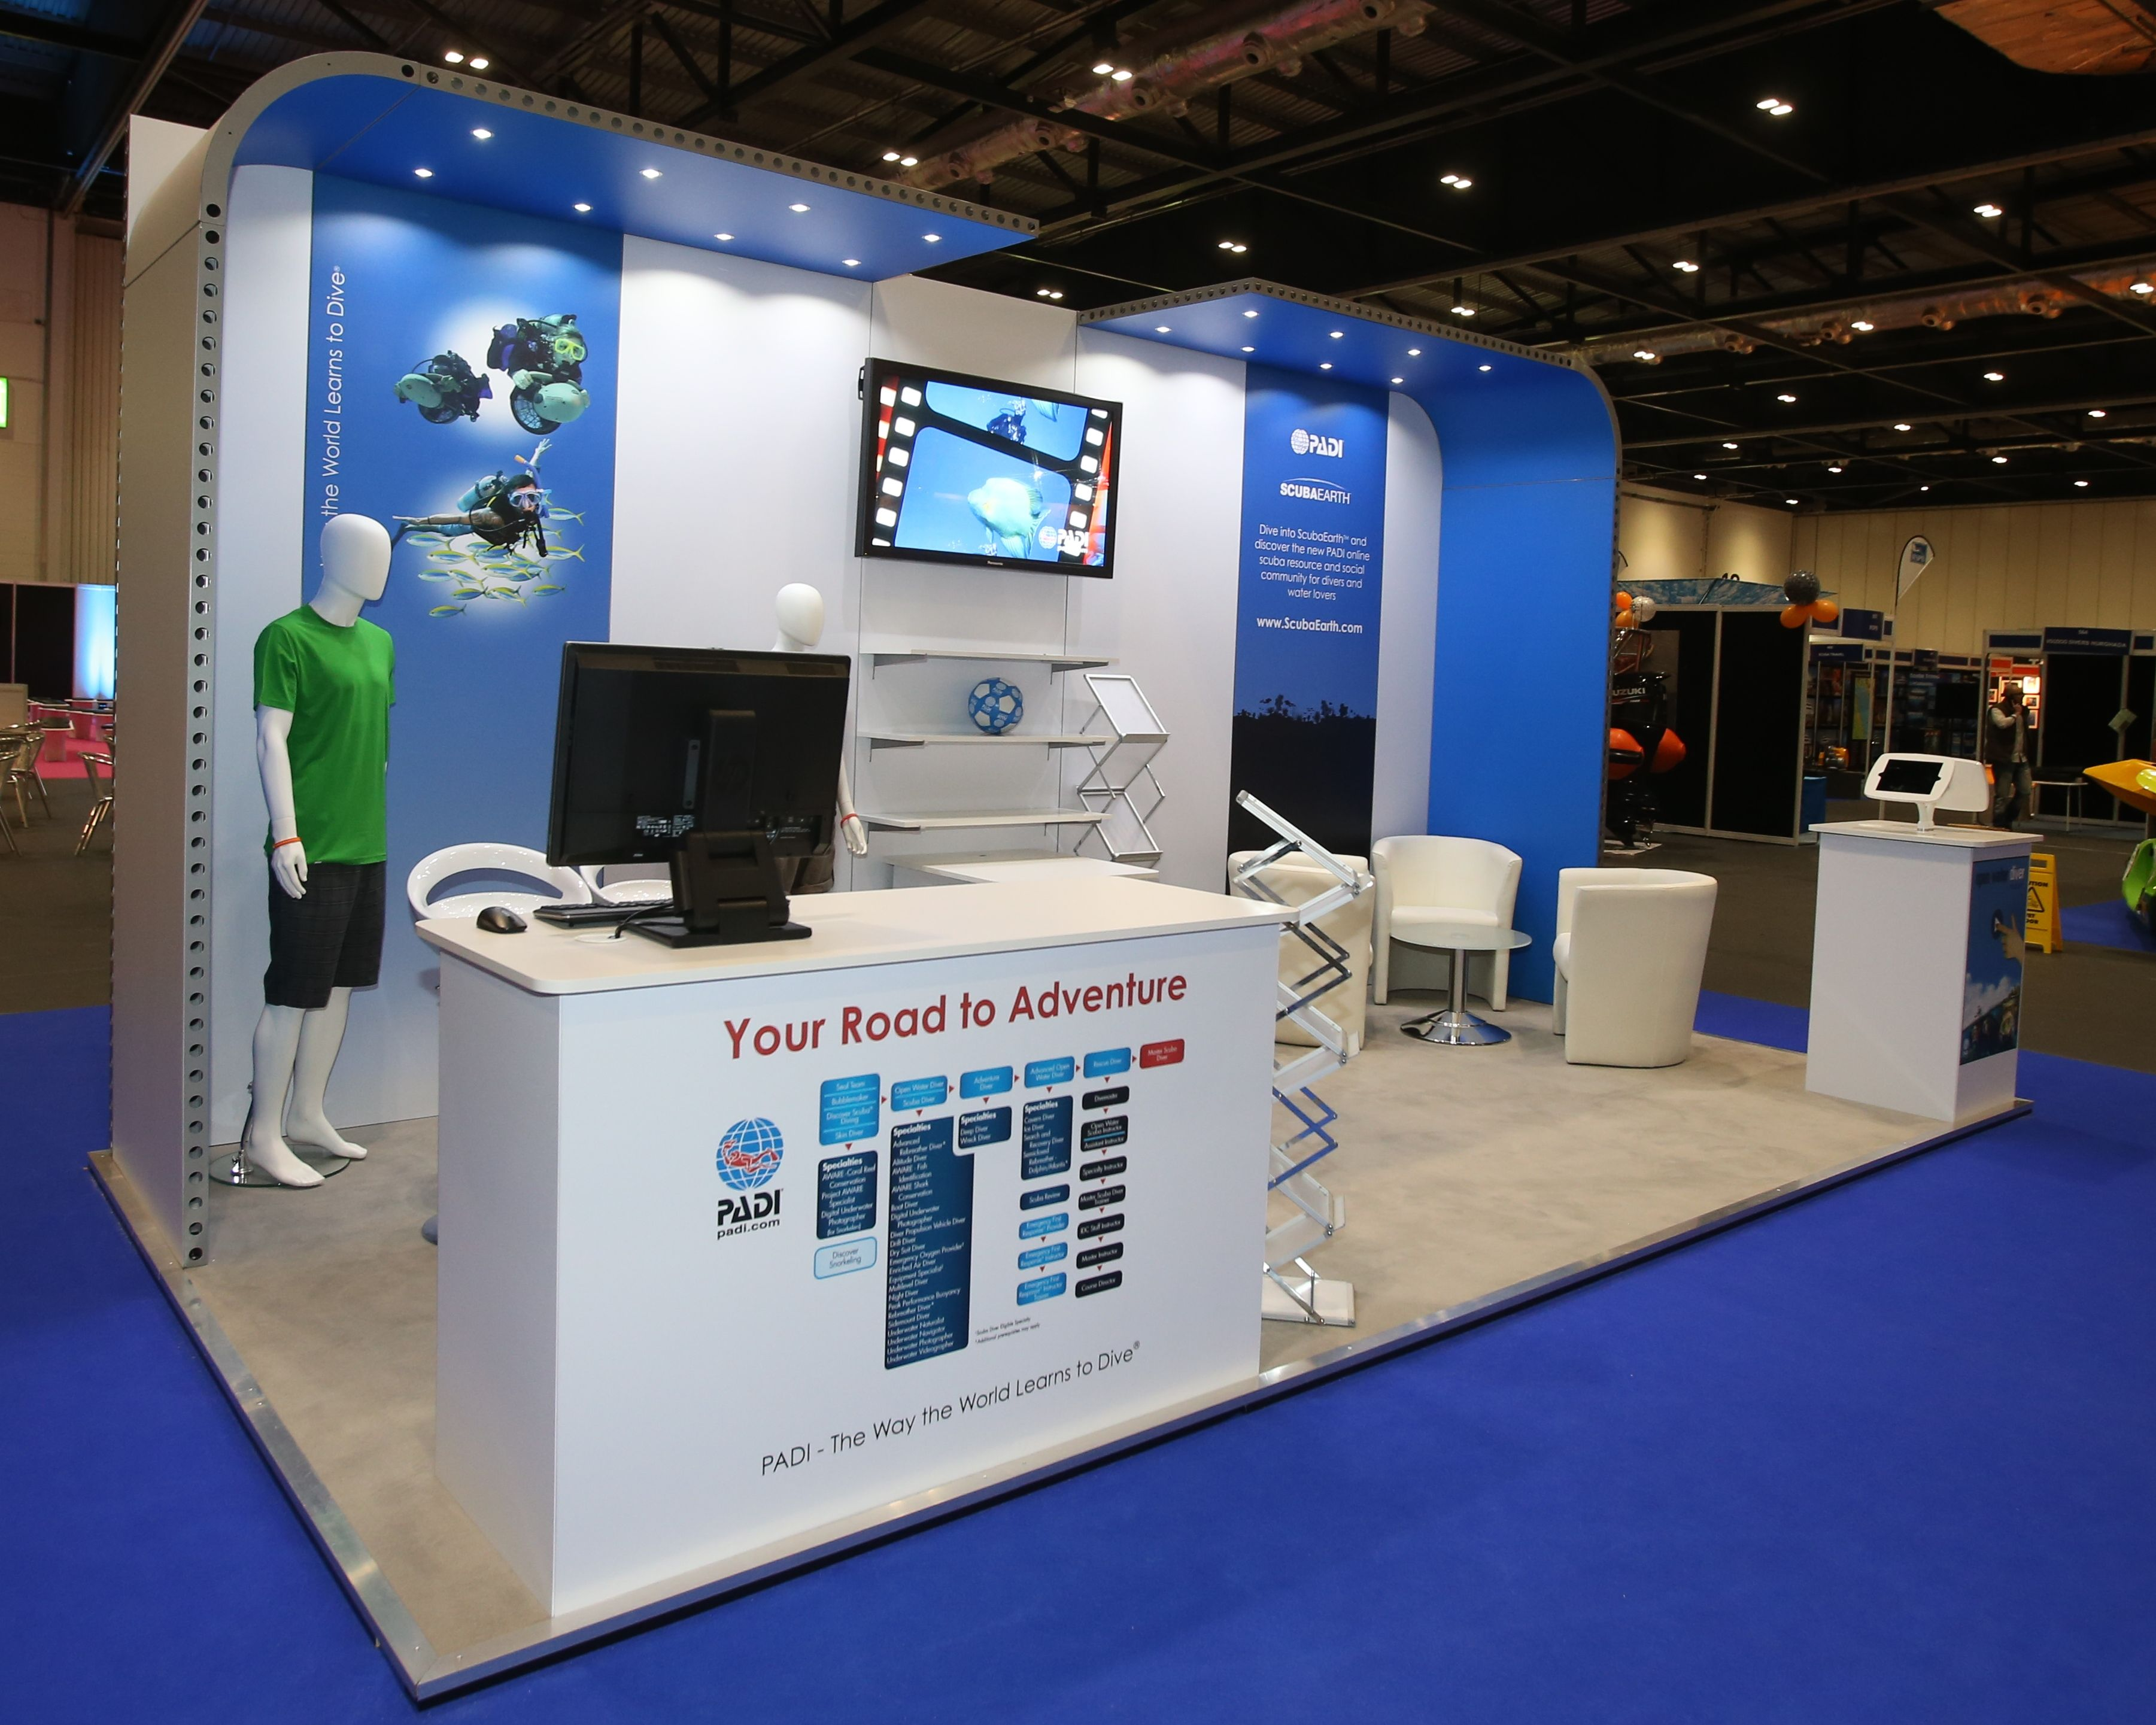 School Exhibition Stall Design : Padi international diving school enhancing their position at the top